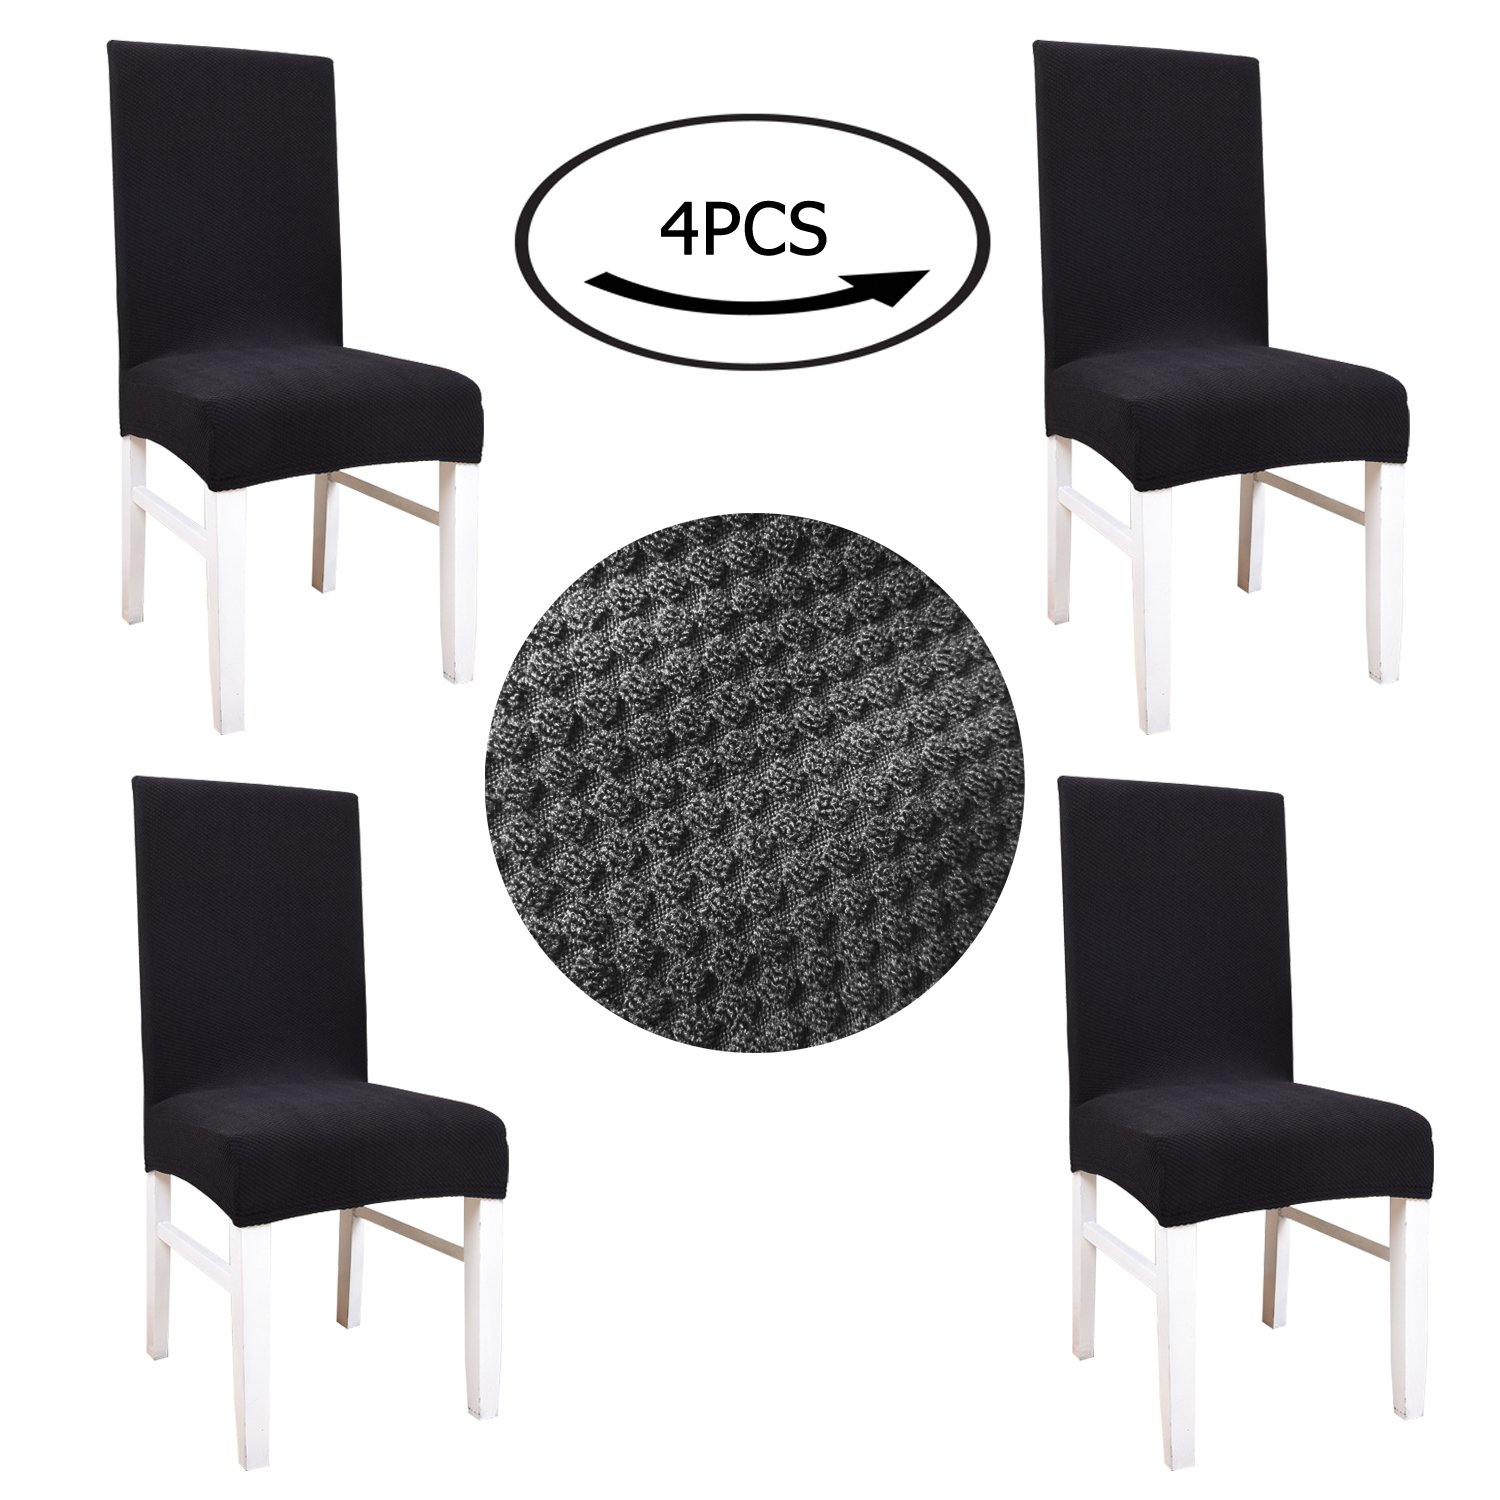 Kate Princess Black Gold Fortune Knit Jacquard Spandex breathable Fabric Stretch Dining Room Chair Slipcovers Set of 4